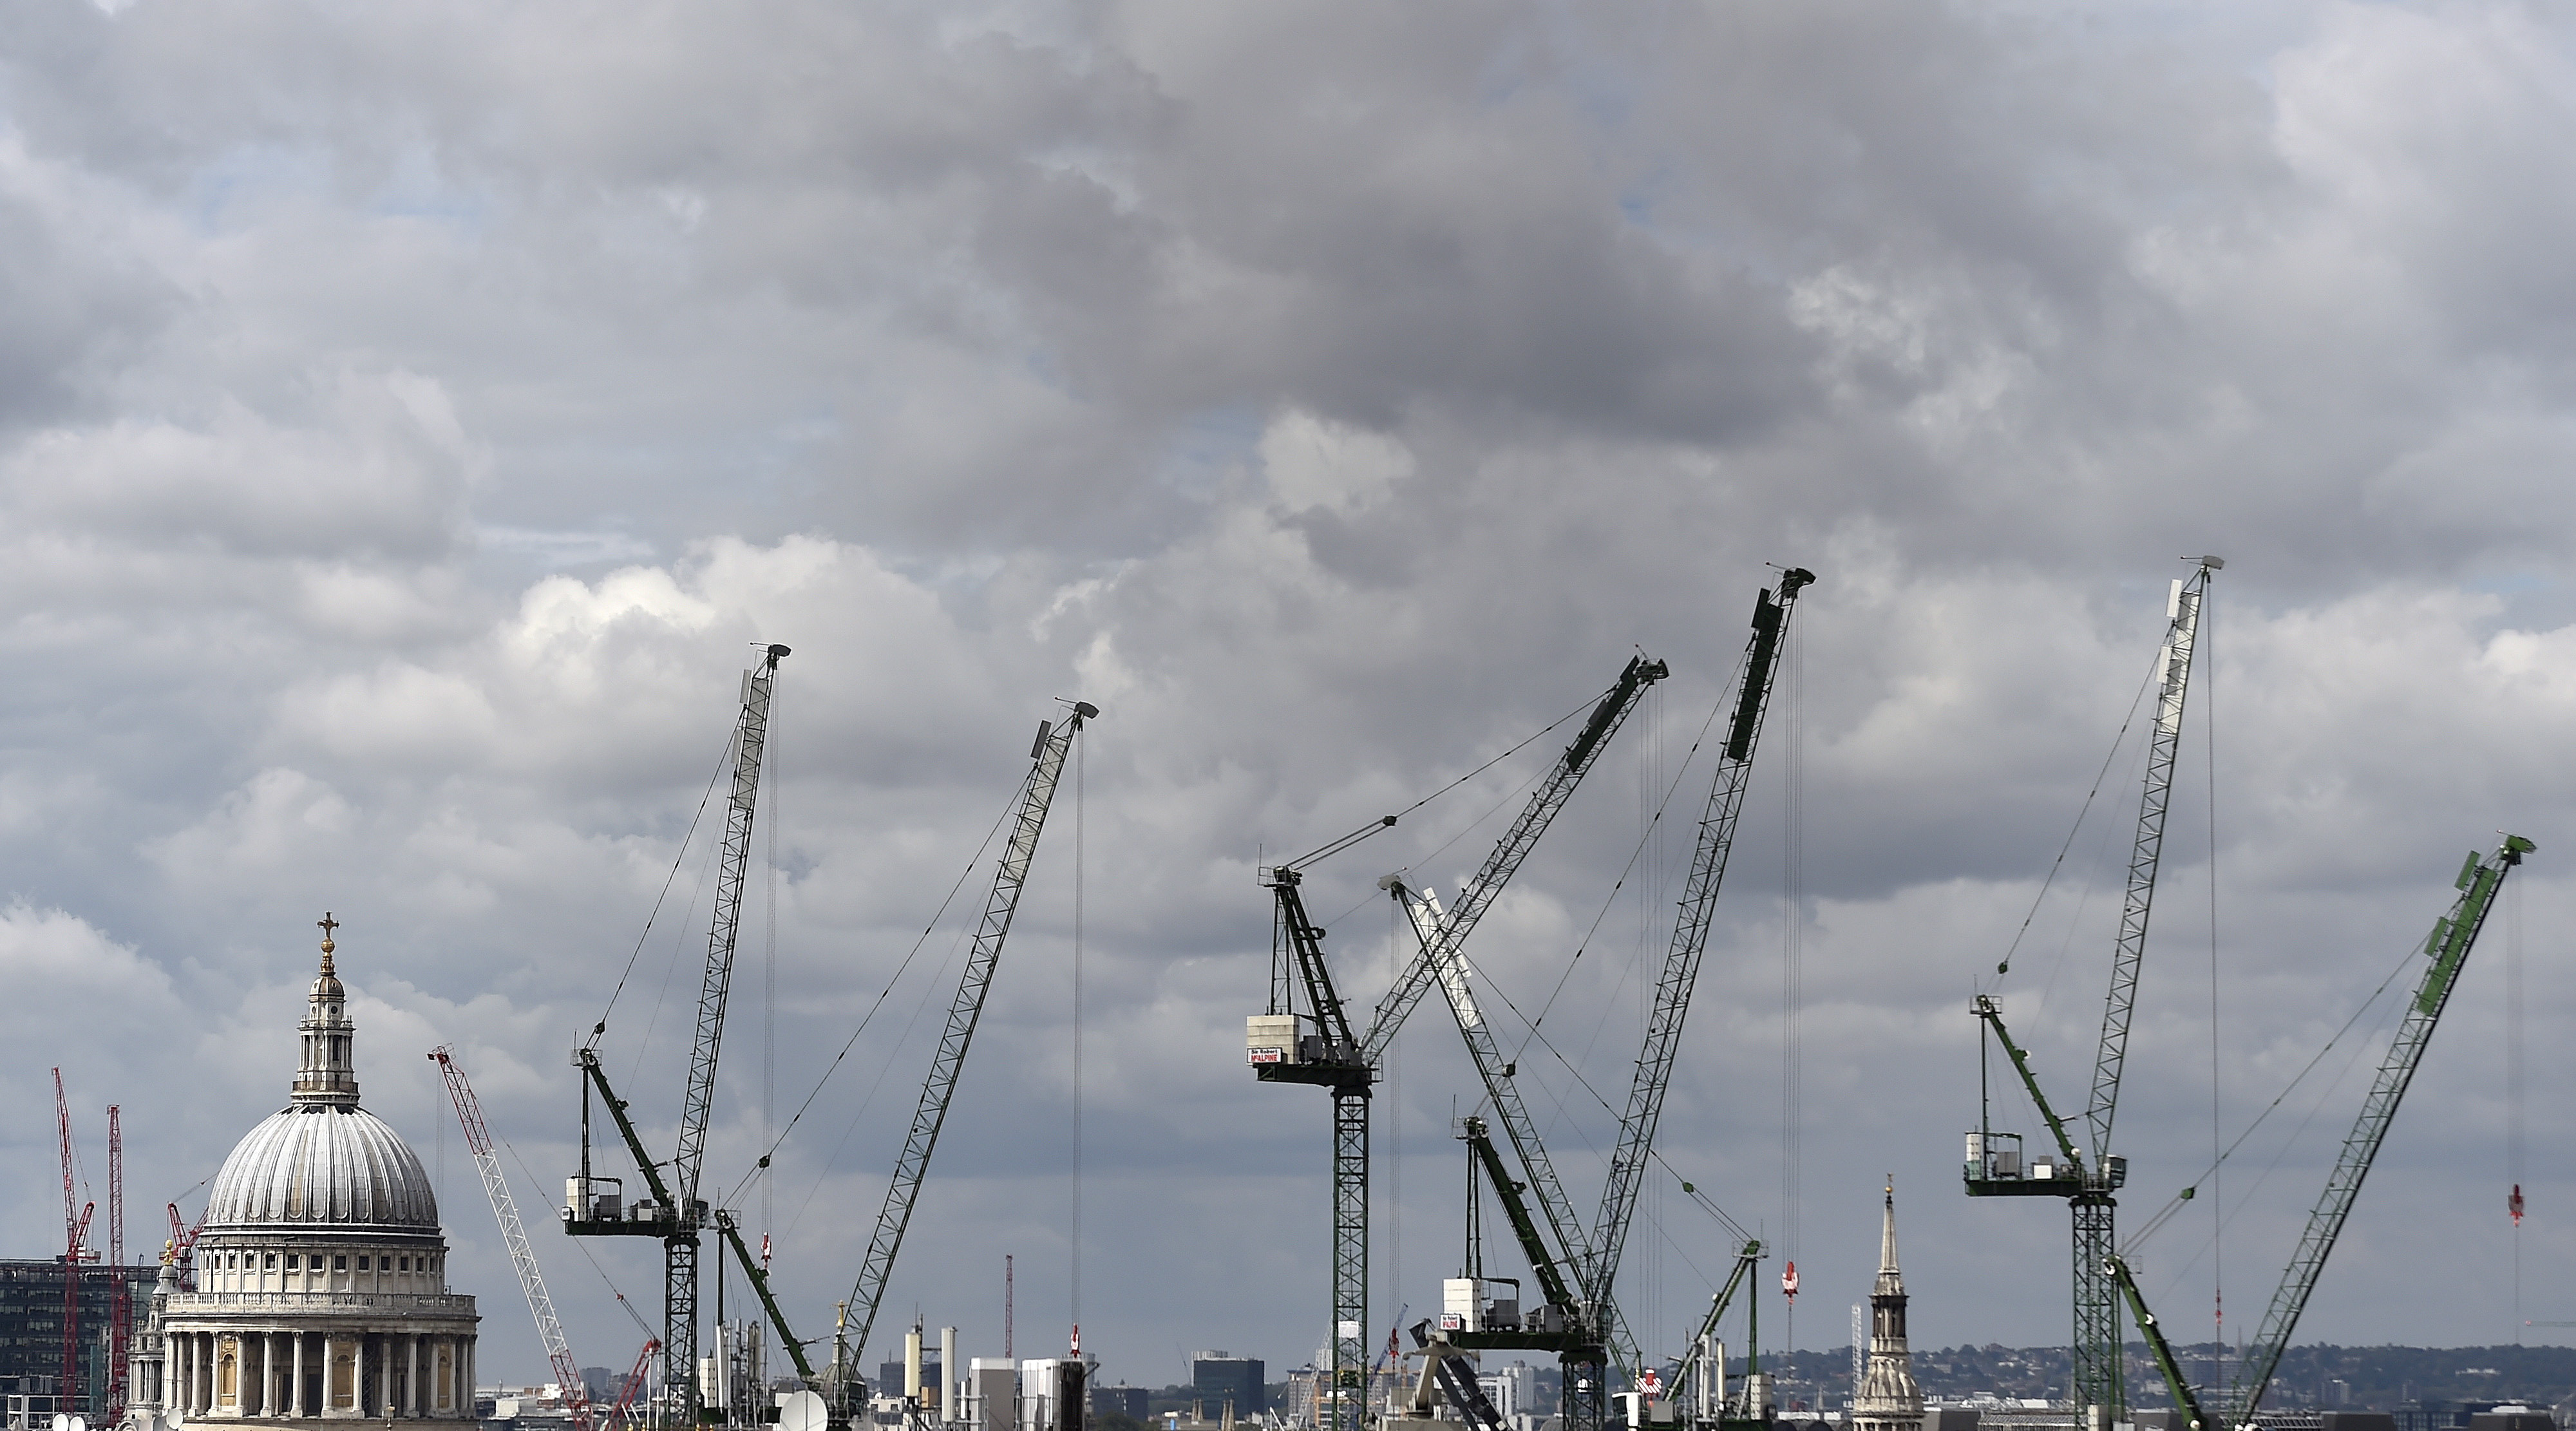 Construction cranes are seen around St. Paul's Cathedral in London, Britain, September 3, 2015. REUTERS/Toby Melville/File Photo - D1BEUDRJIZAC